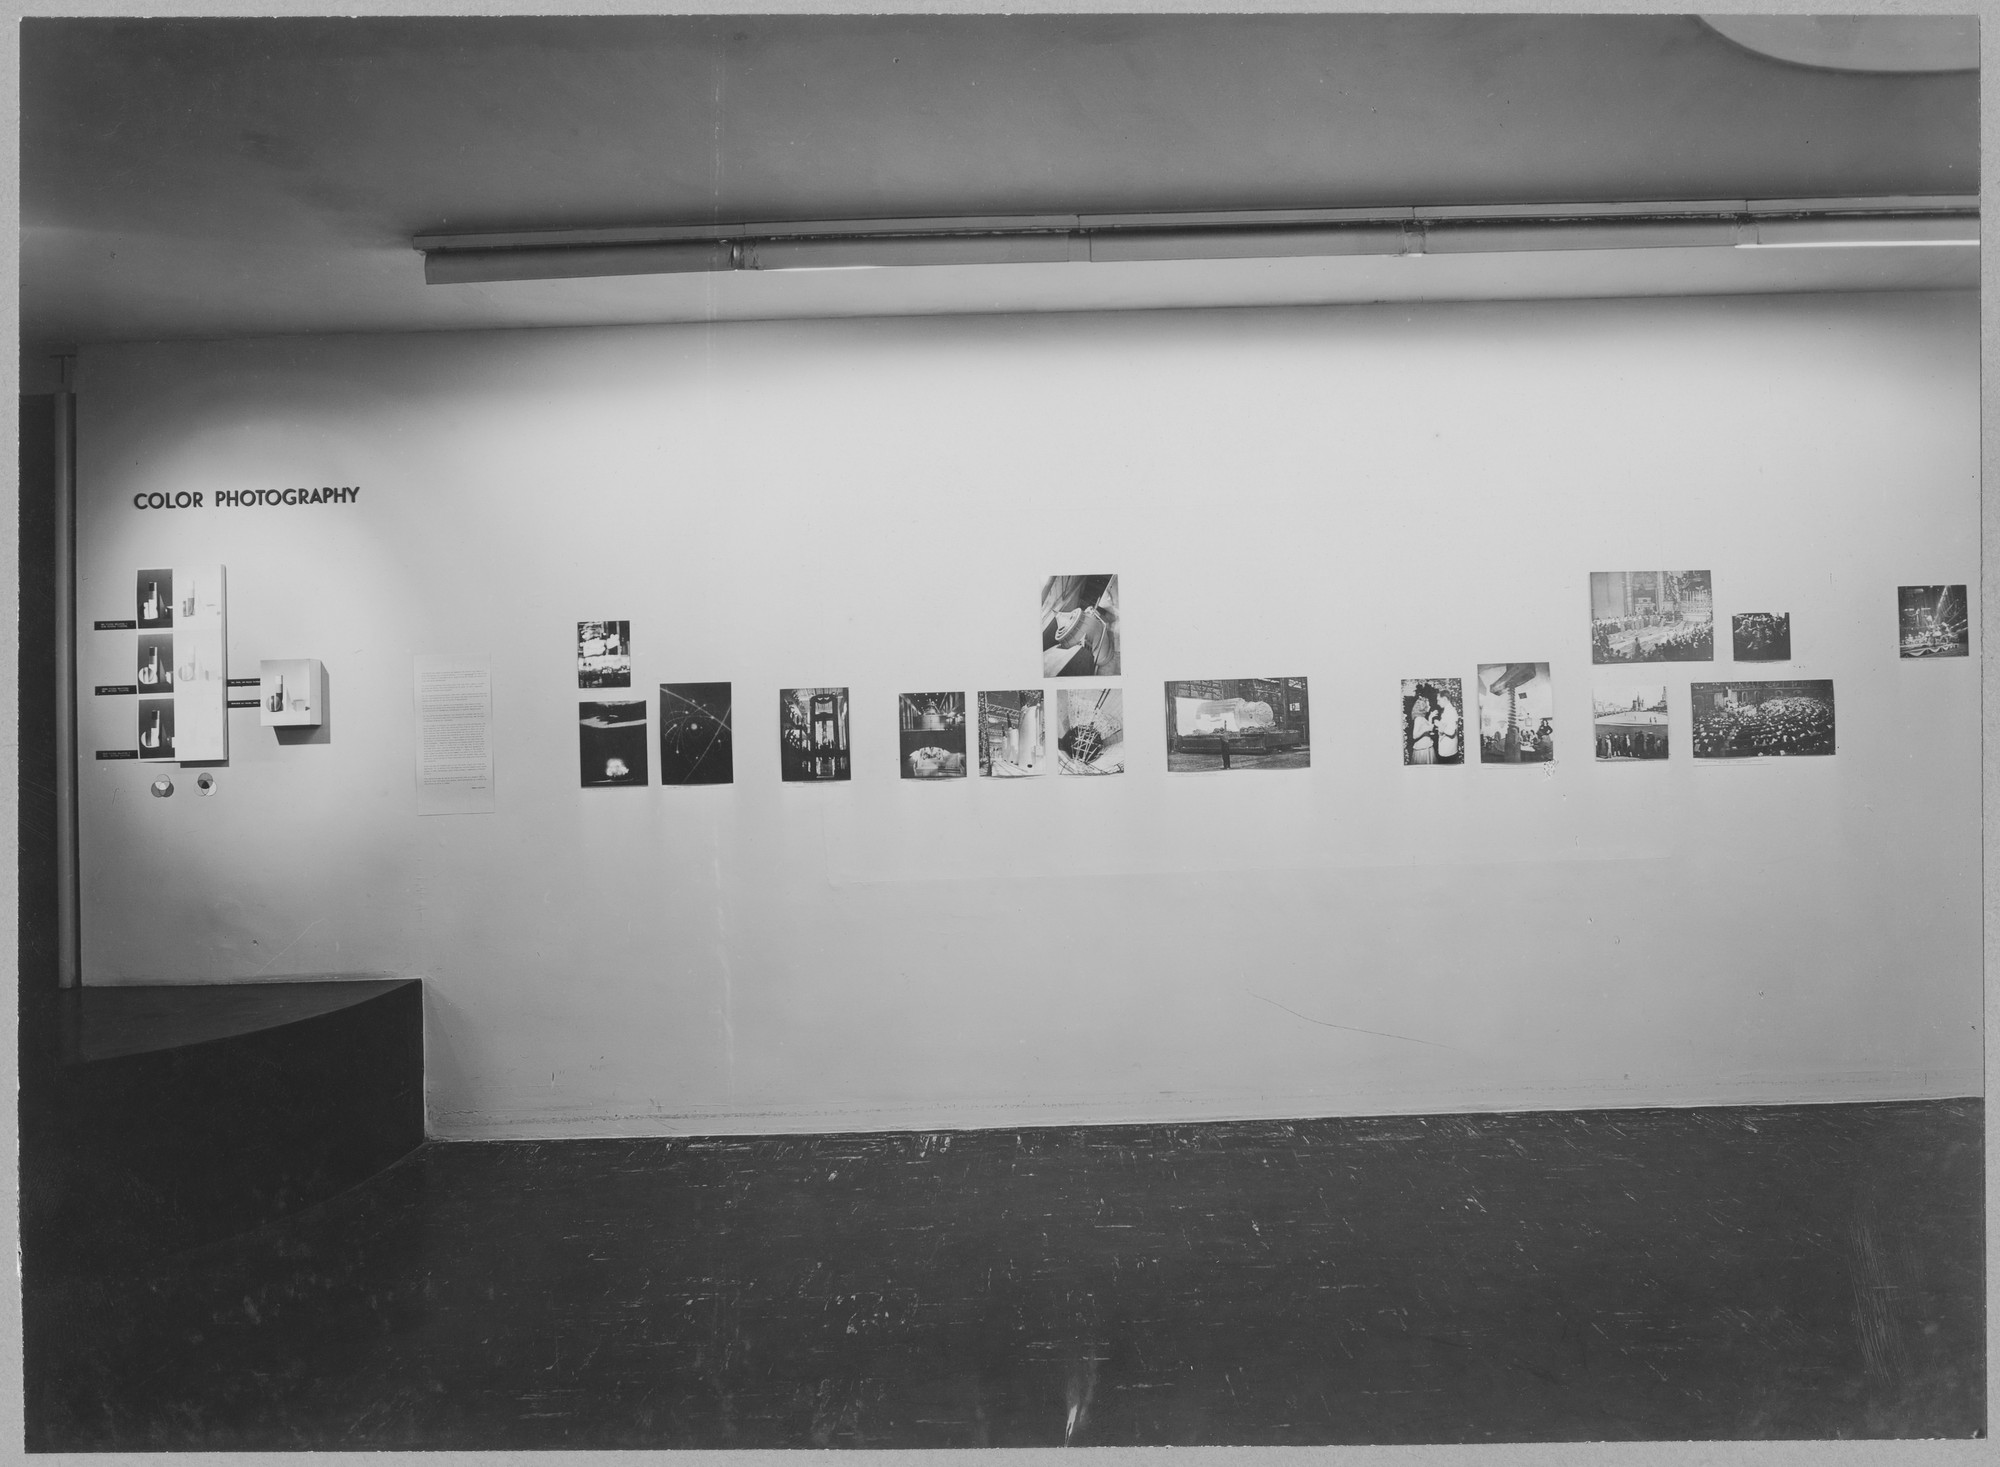 "Installation view of the exhibition, ""Color Photography"" May 9, 1950–July 4, 1950. Photographic Archive. The Museum of Modern Art Archives, New York. IN445.1. Photograph by Soichi Sunami."